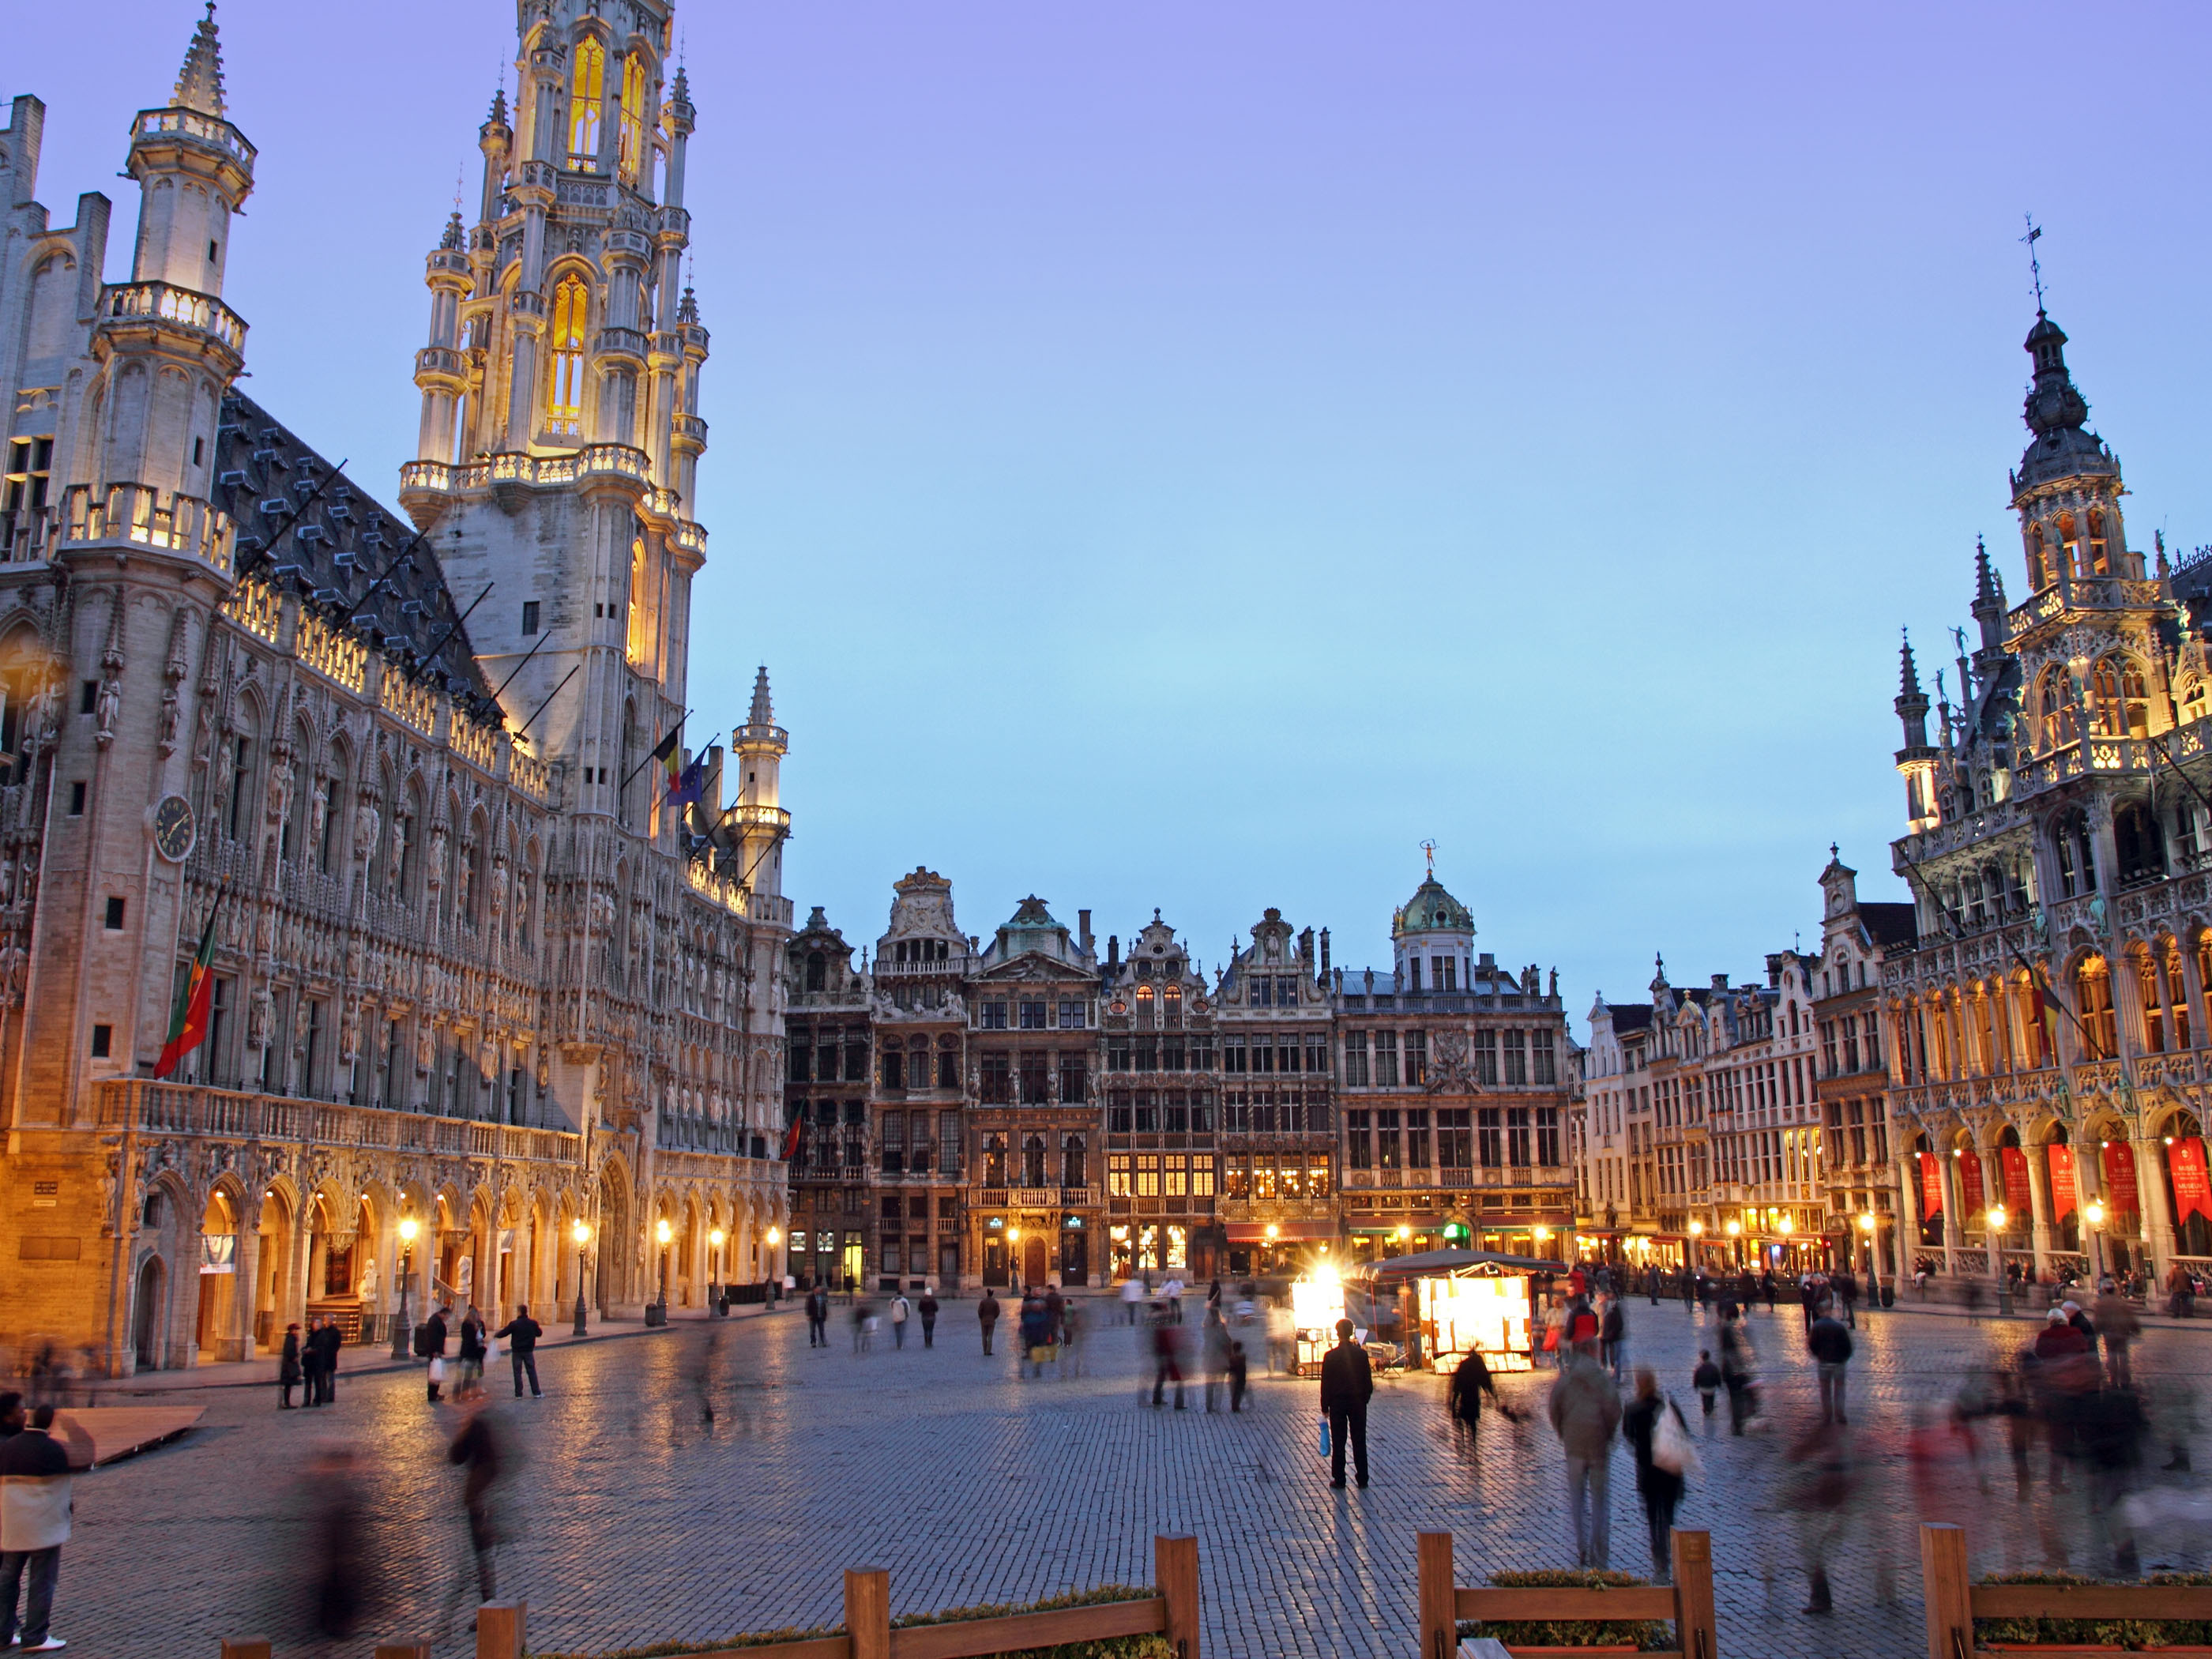 Grand-Place-Bruxelles-Belgio